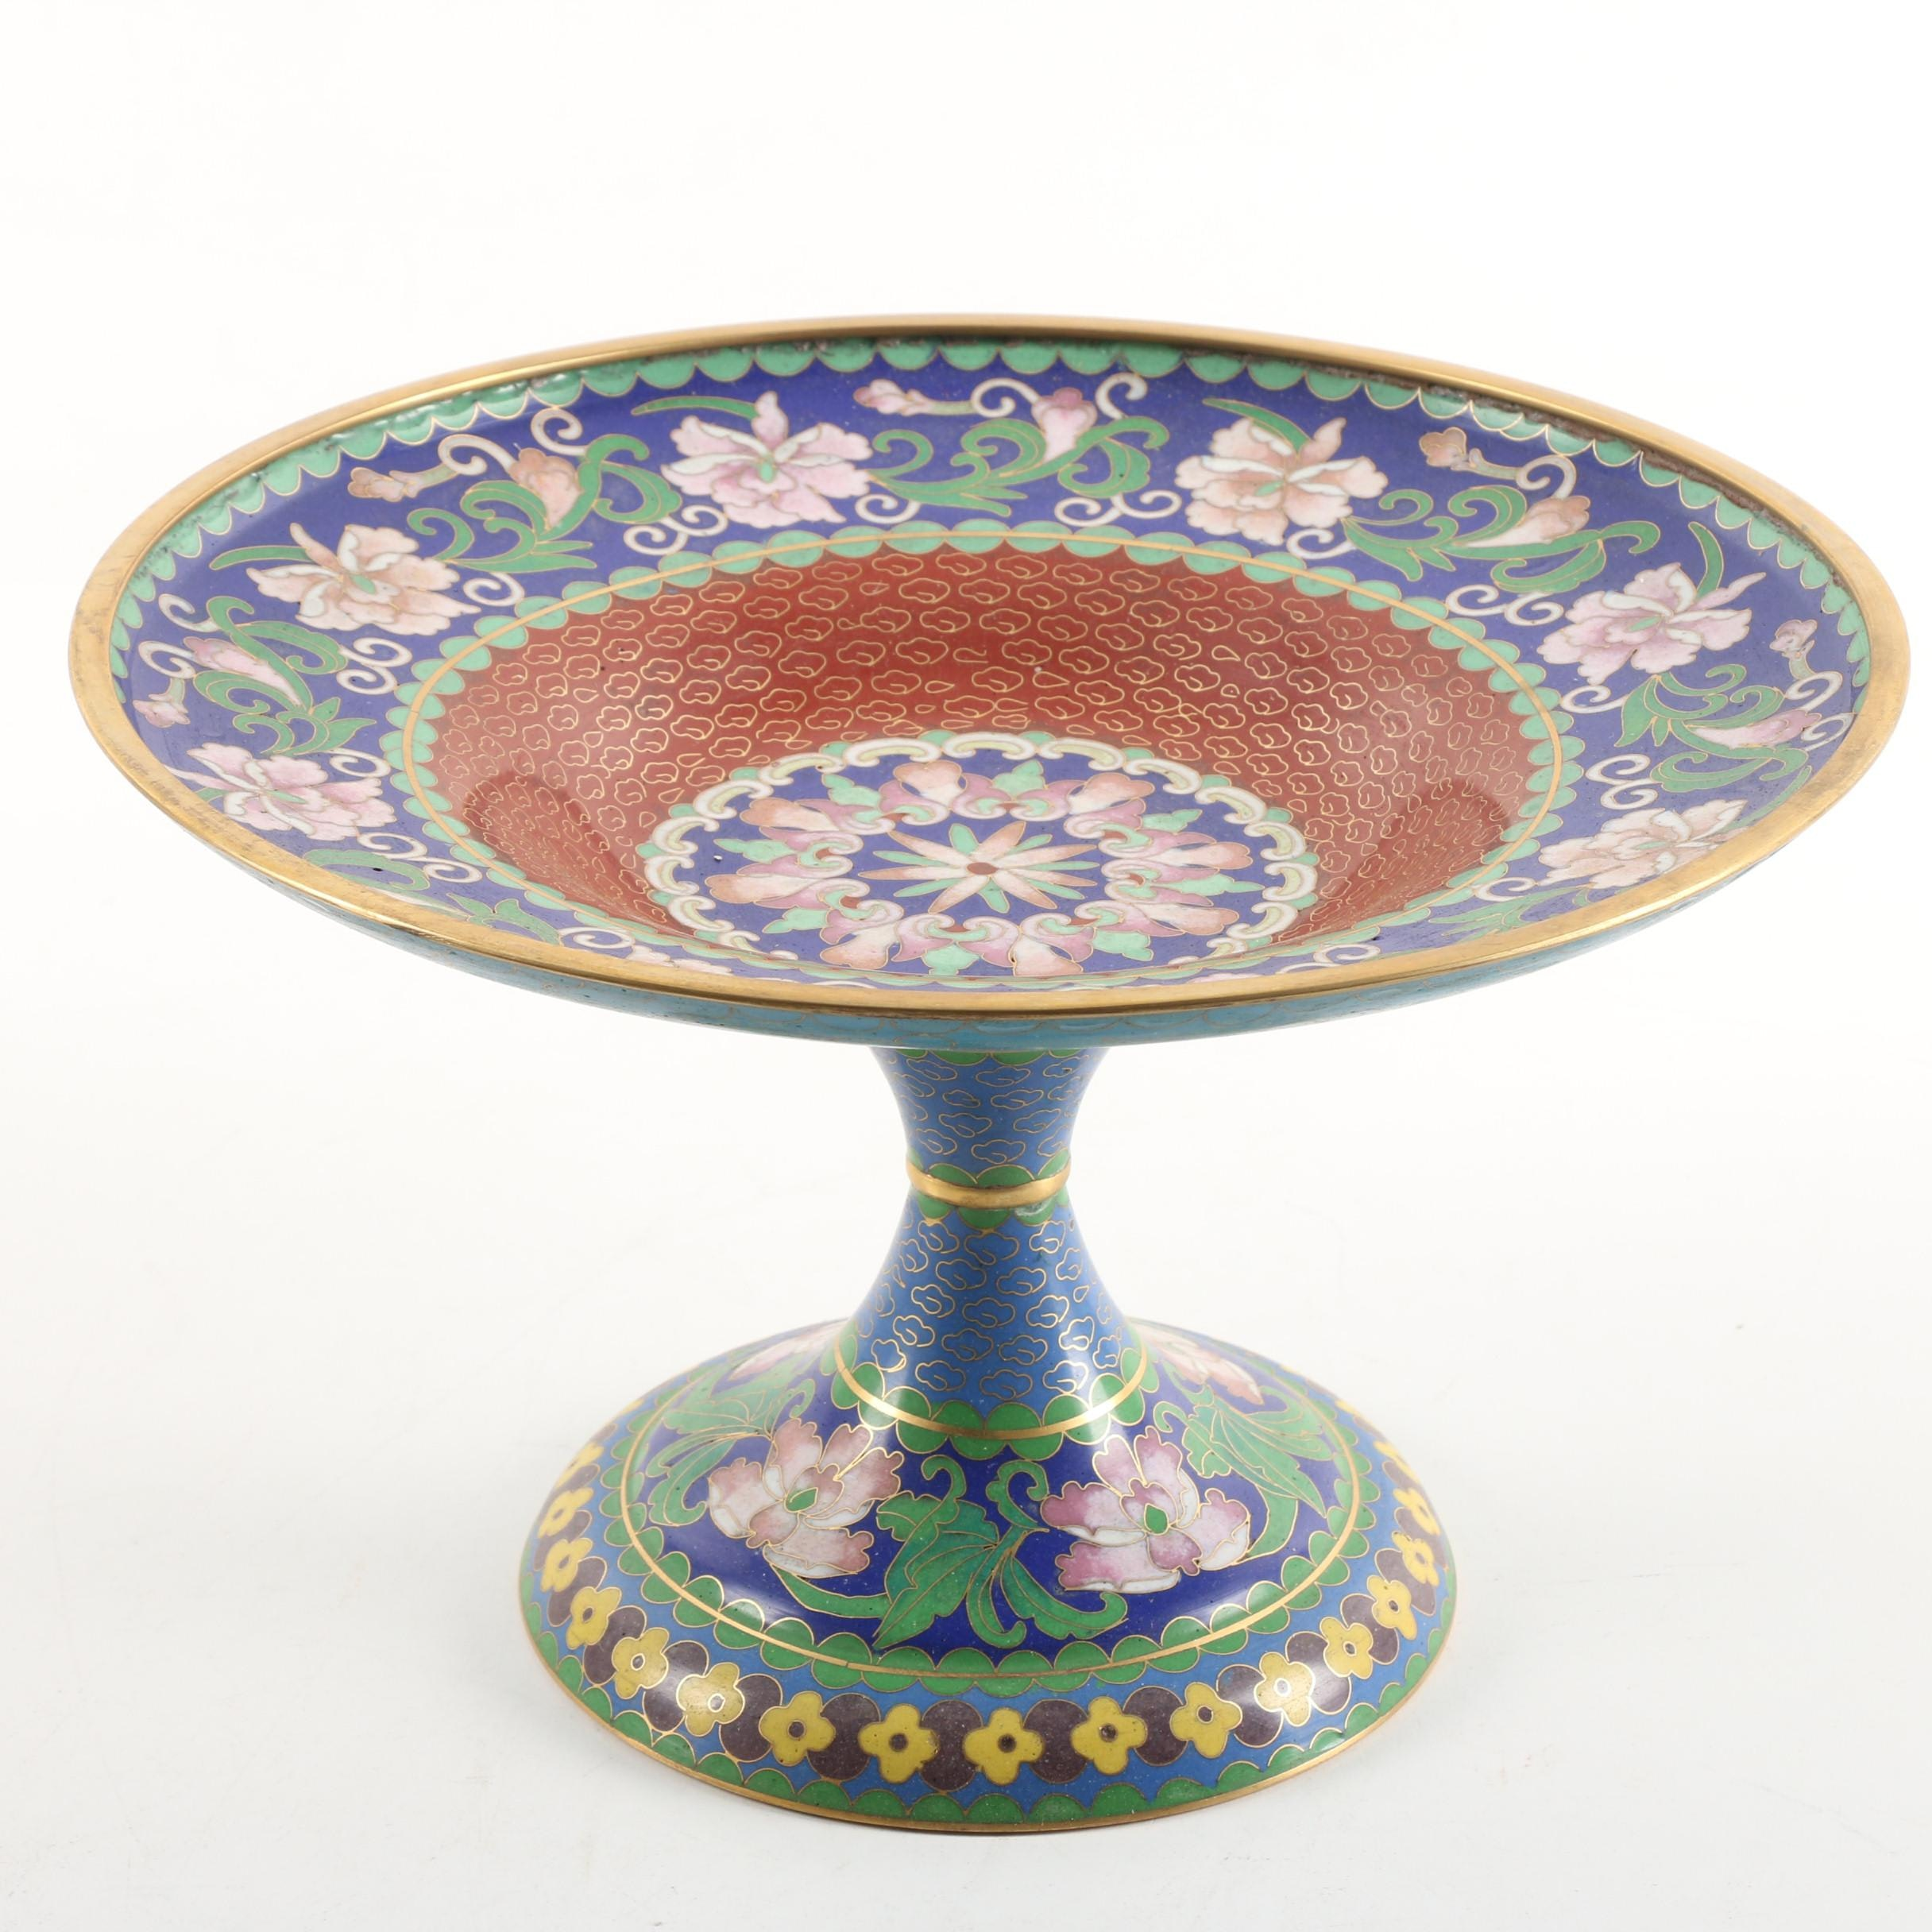 Chinese Cloisonné Compote